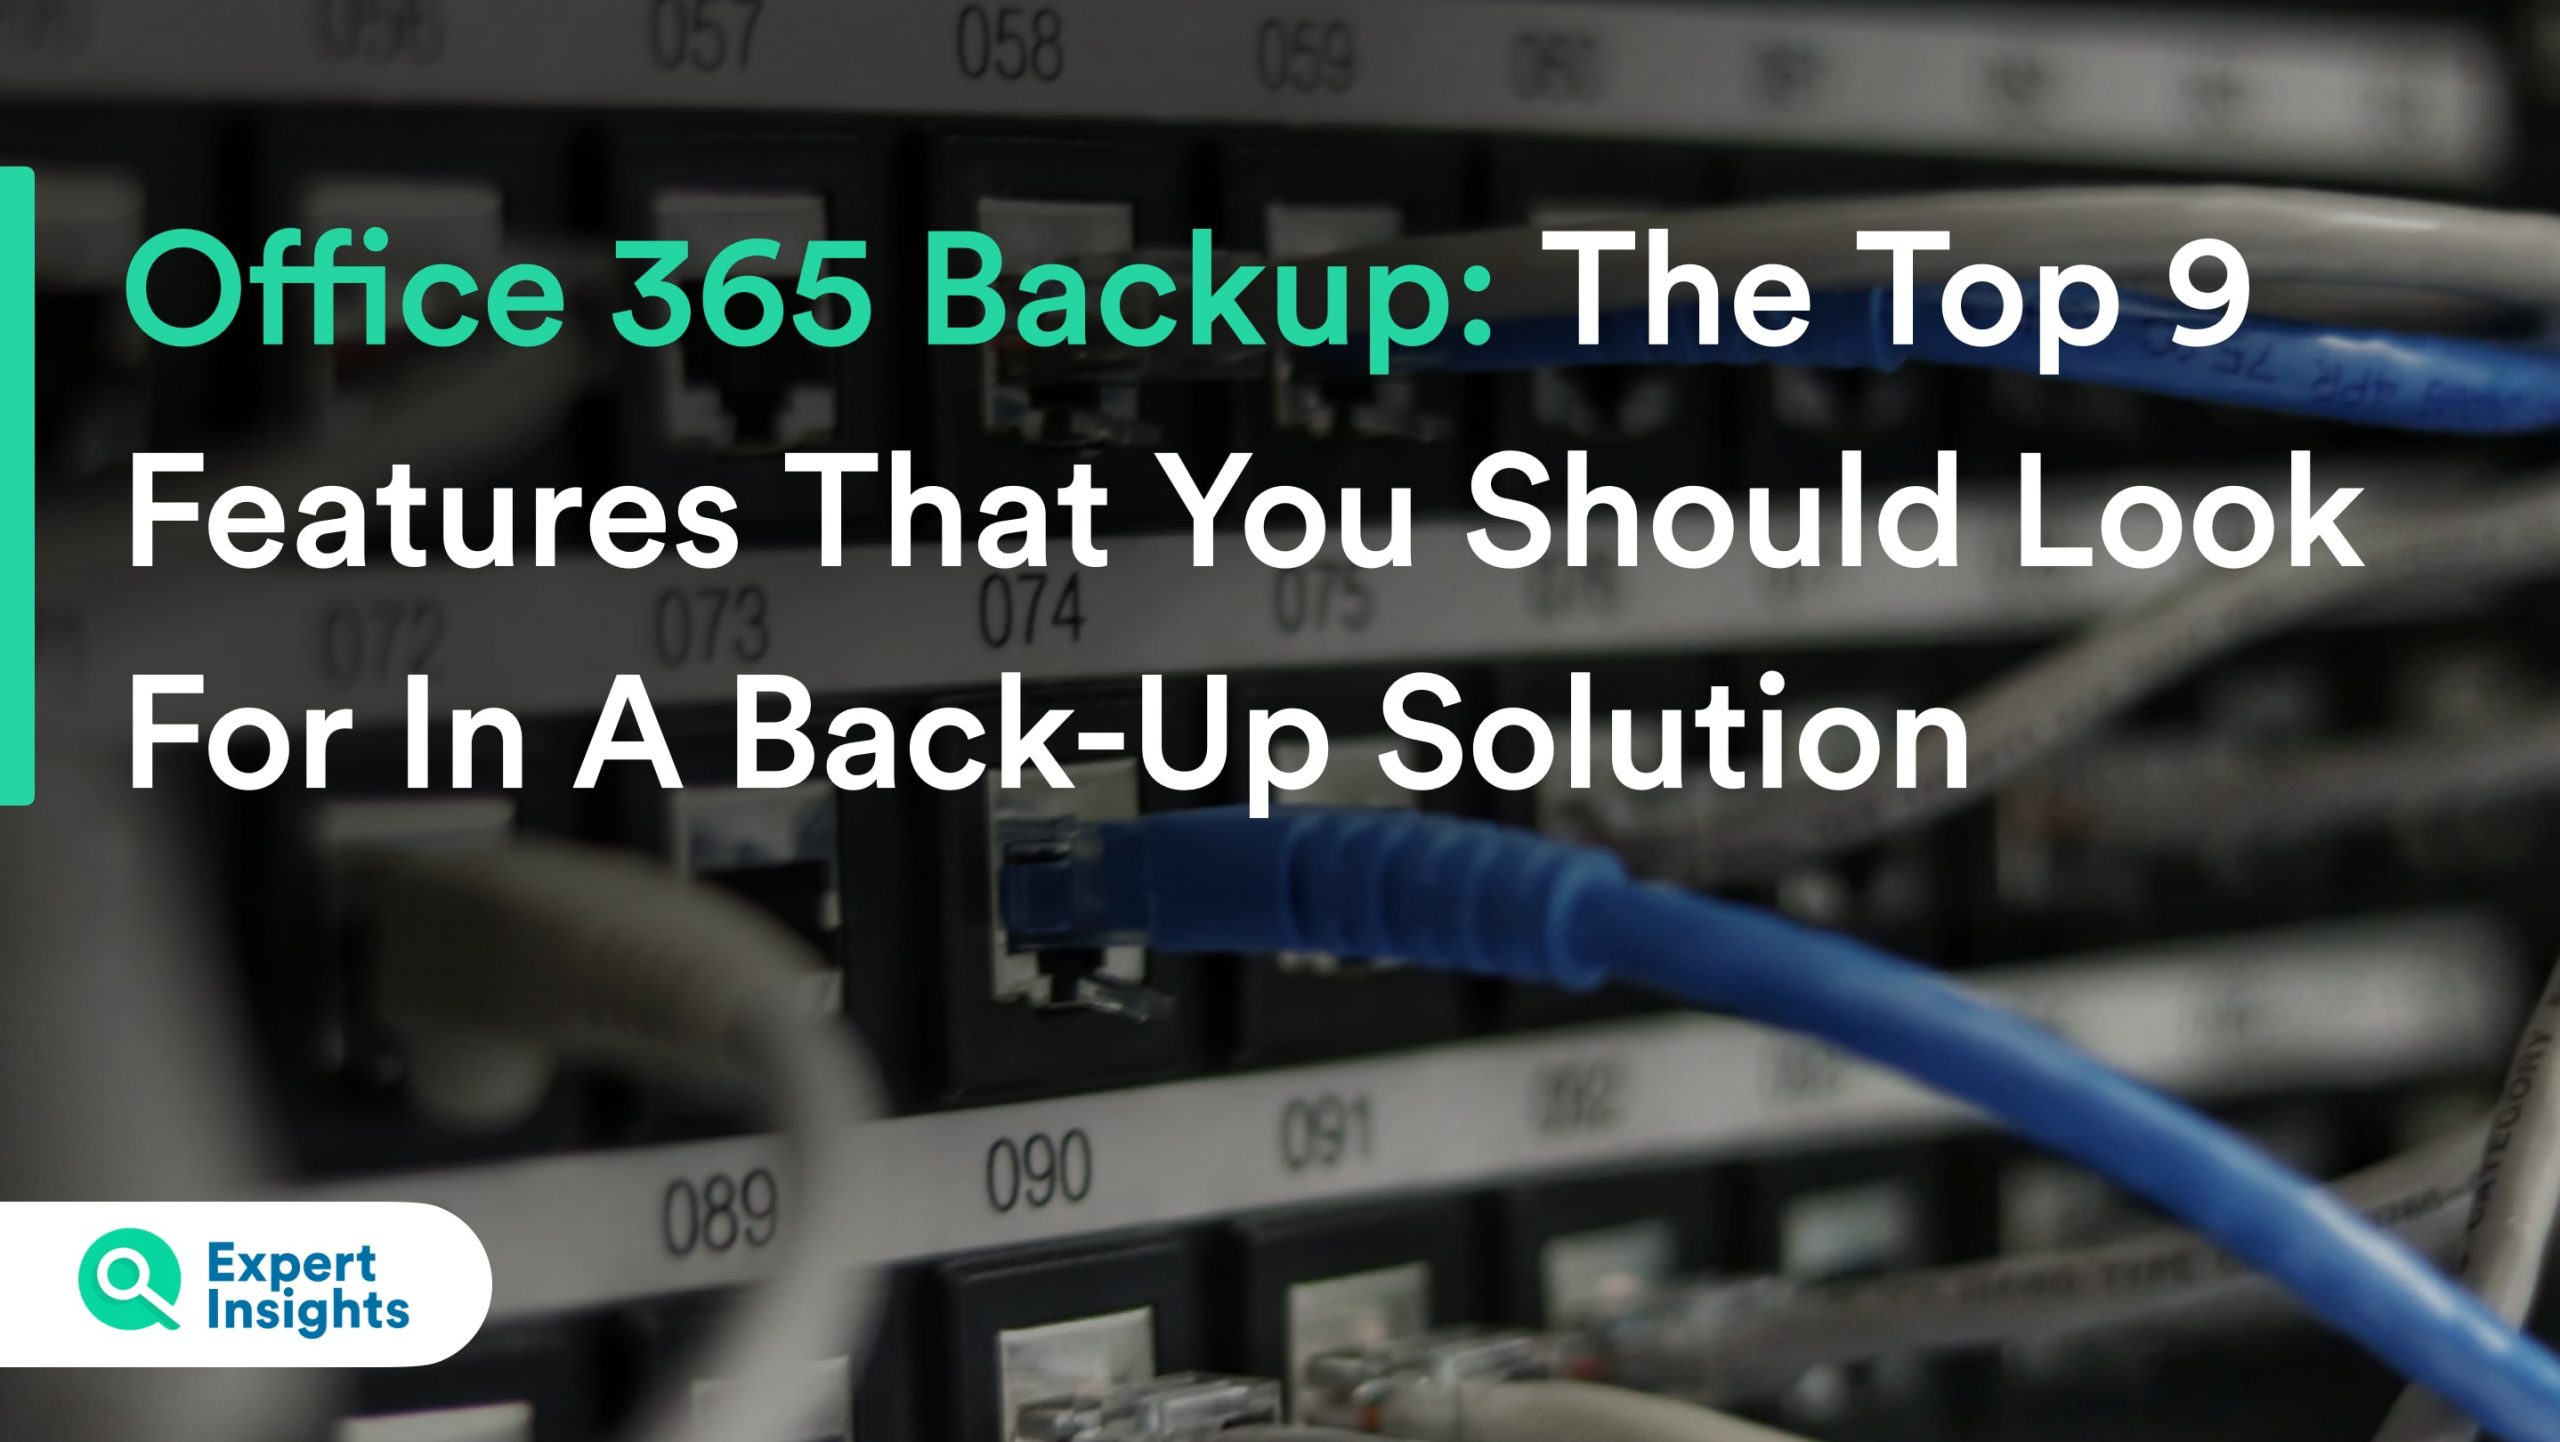 The Top 9 Features You Should Look For In An Office 365 Backup Solution